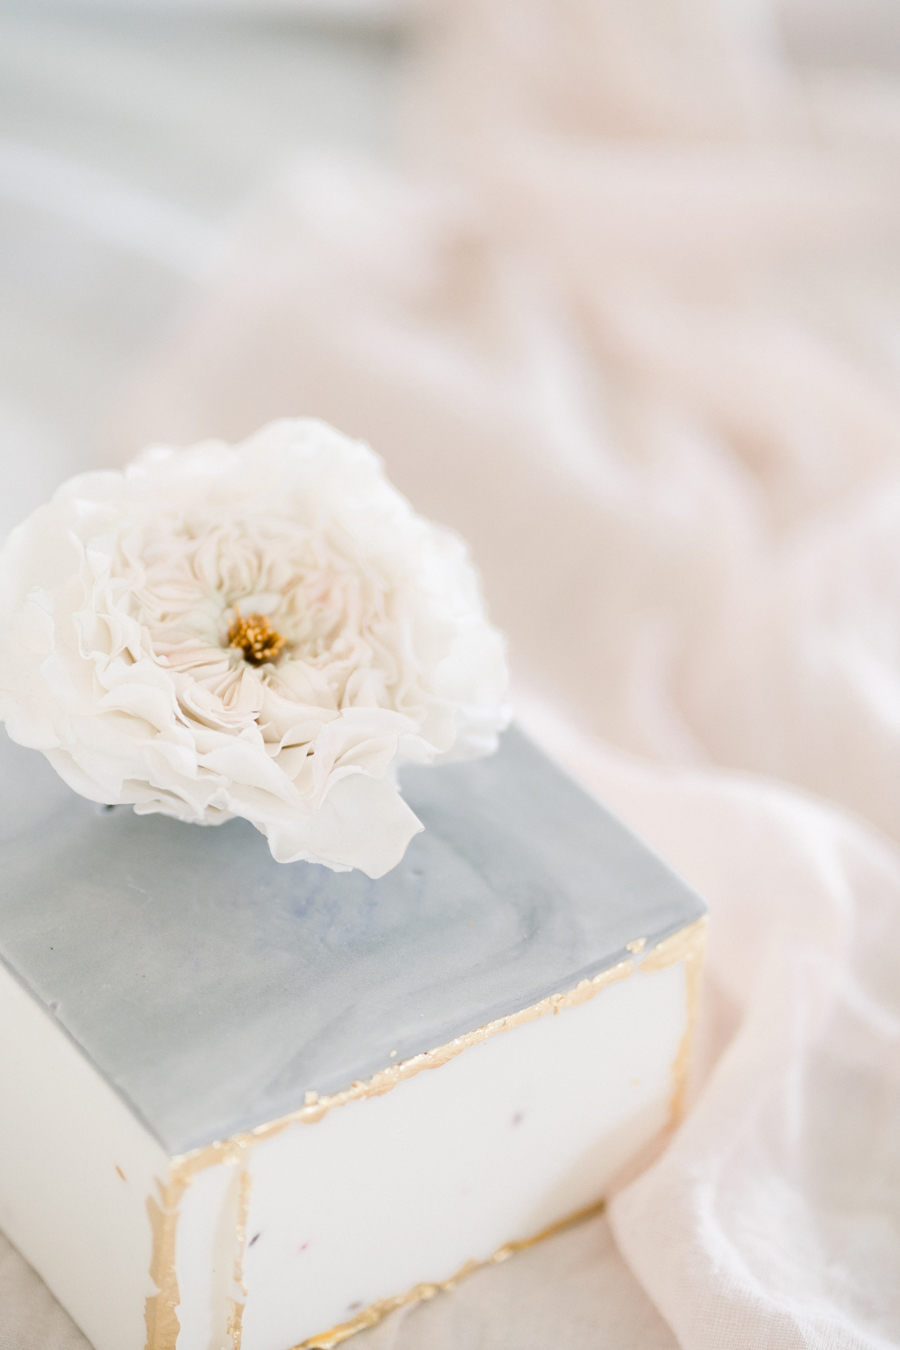 Spring blossom wedding style inspiration and ideas with Chloe Ely Photography at Barton Court (4)